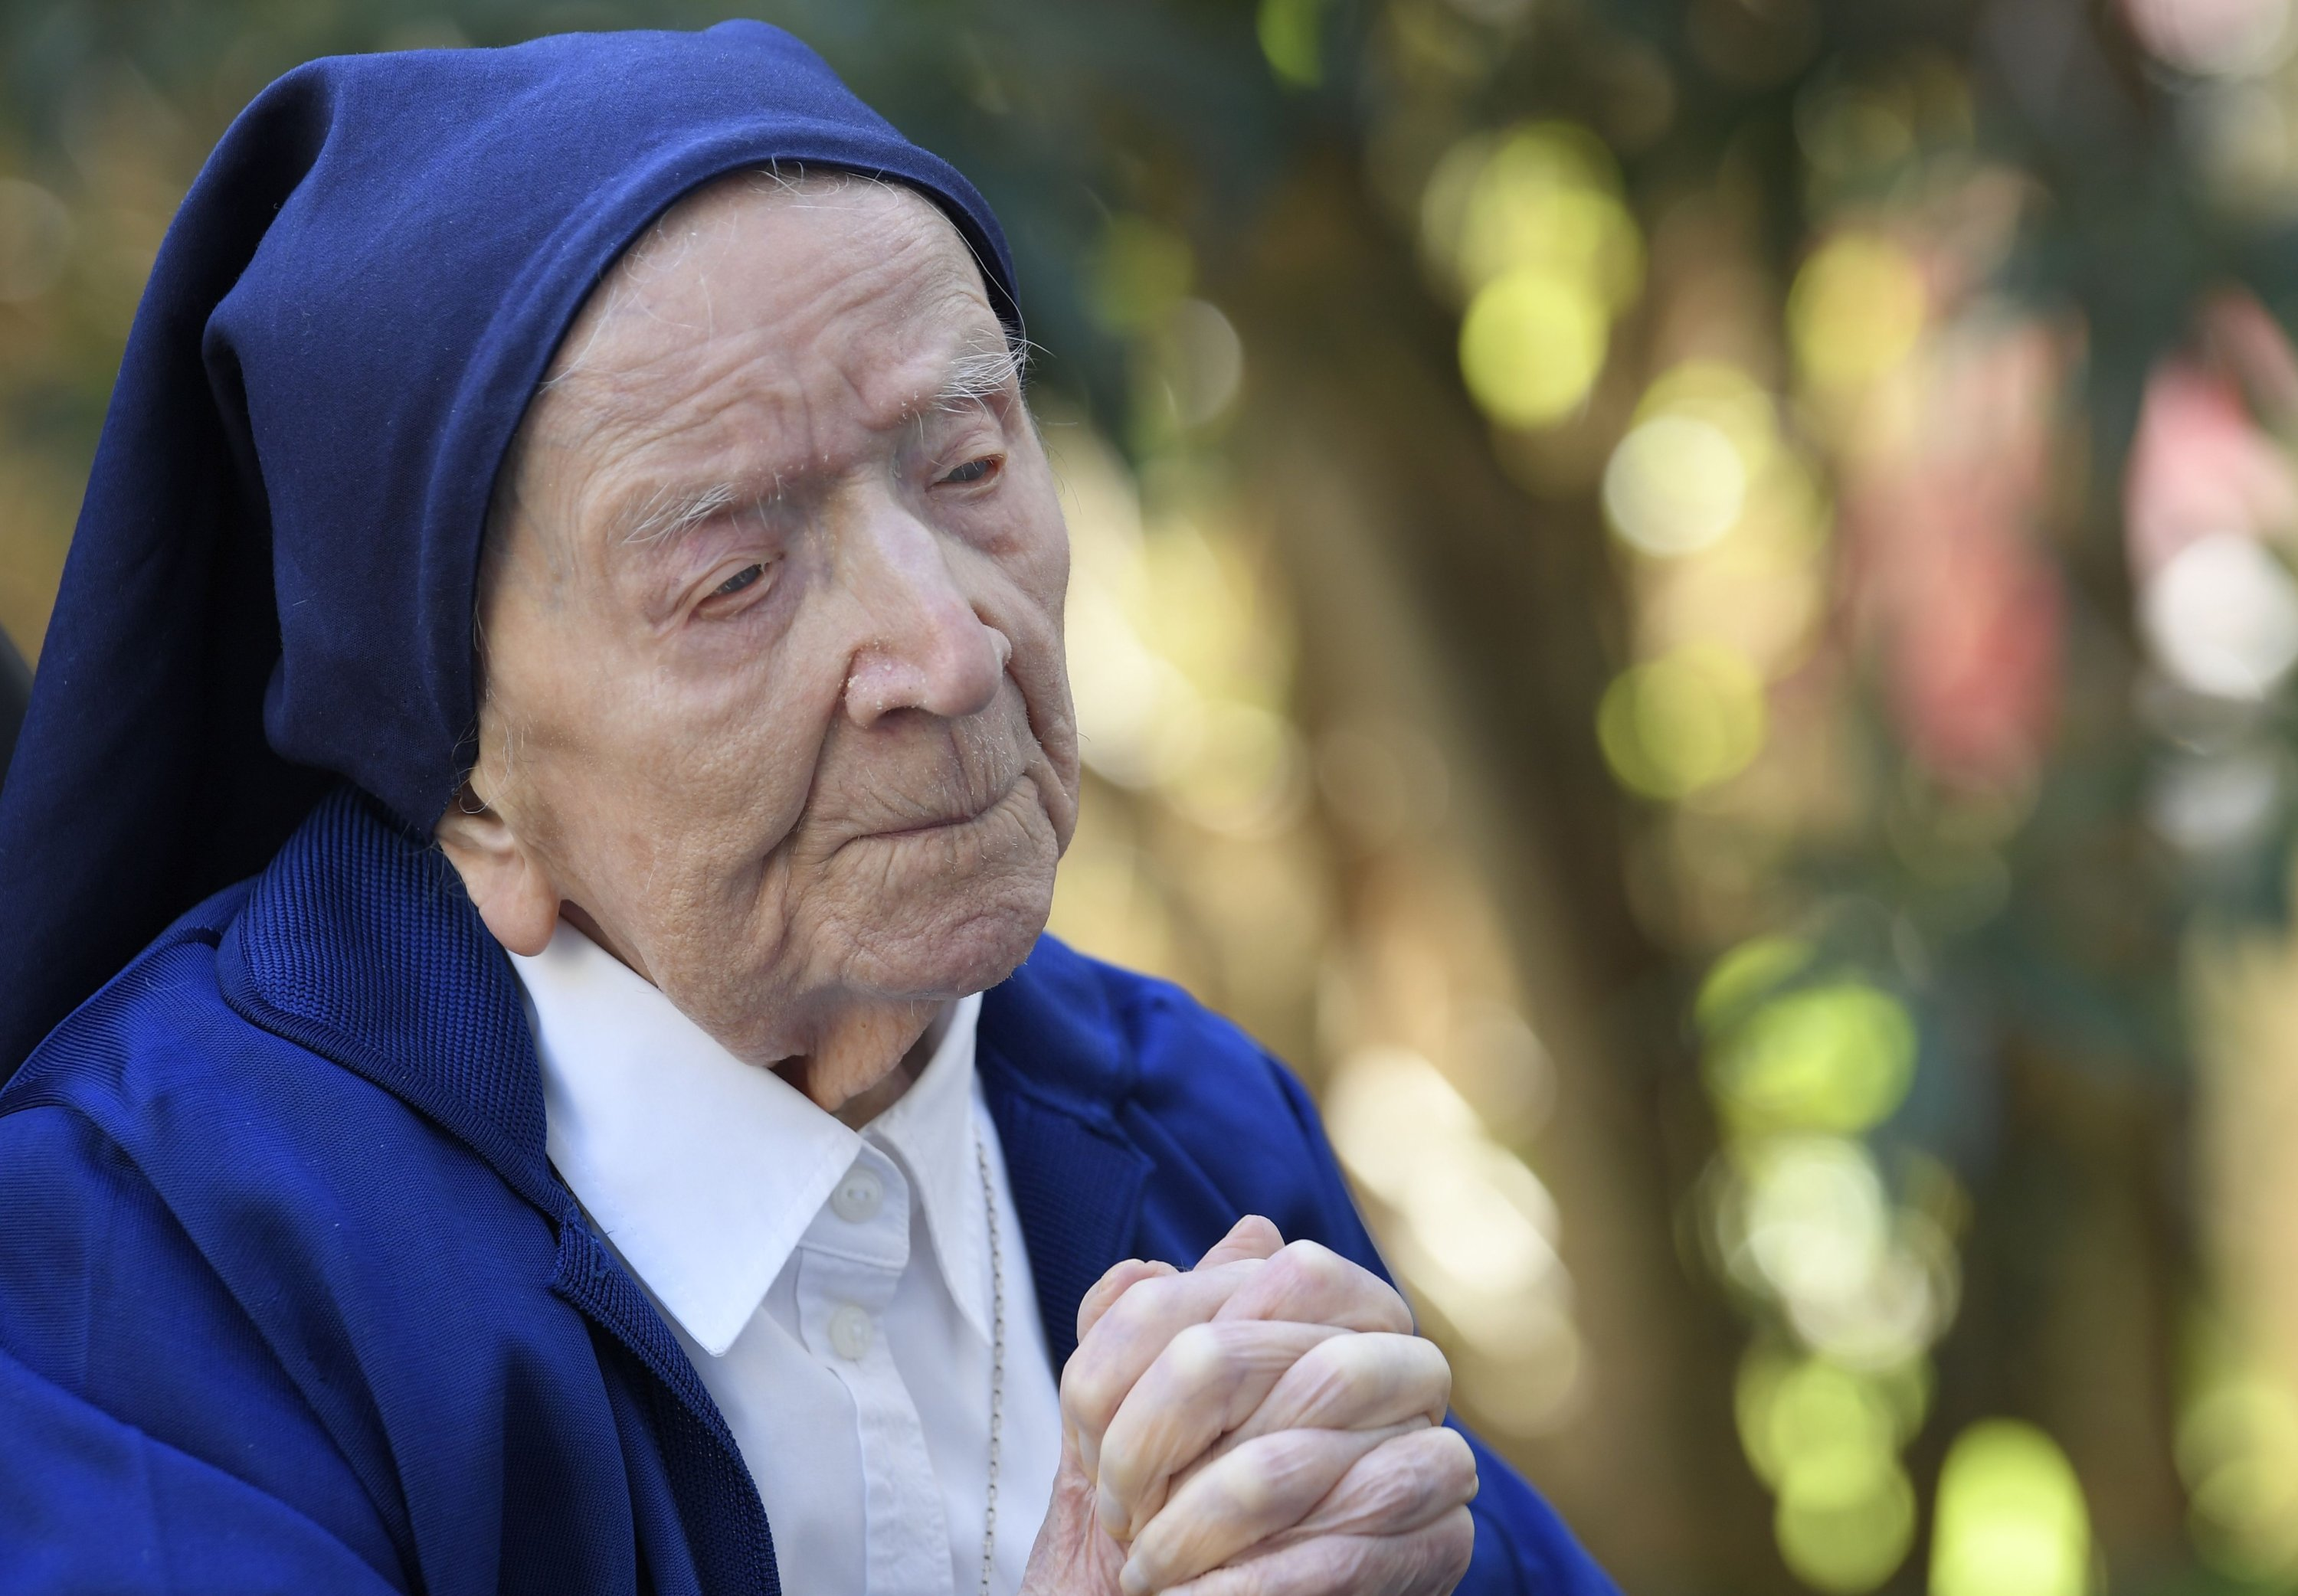 Sister Andre prays in a wheelchair on the eve of her 117th birthday in an EHPAD (Housing Establishment for Dependent Elderly People) in Toulon, southern France. (AFP Photo)